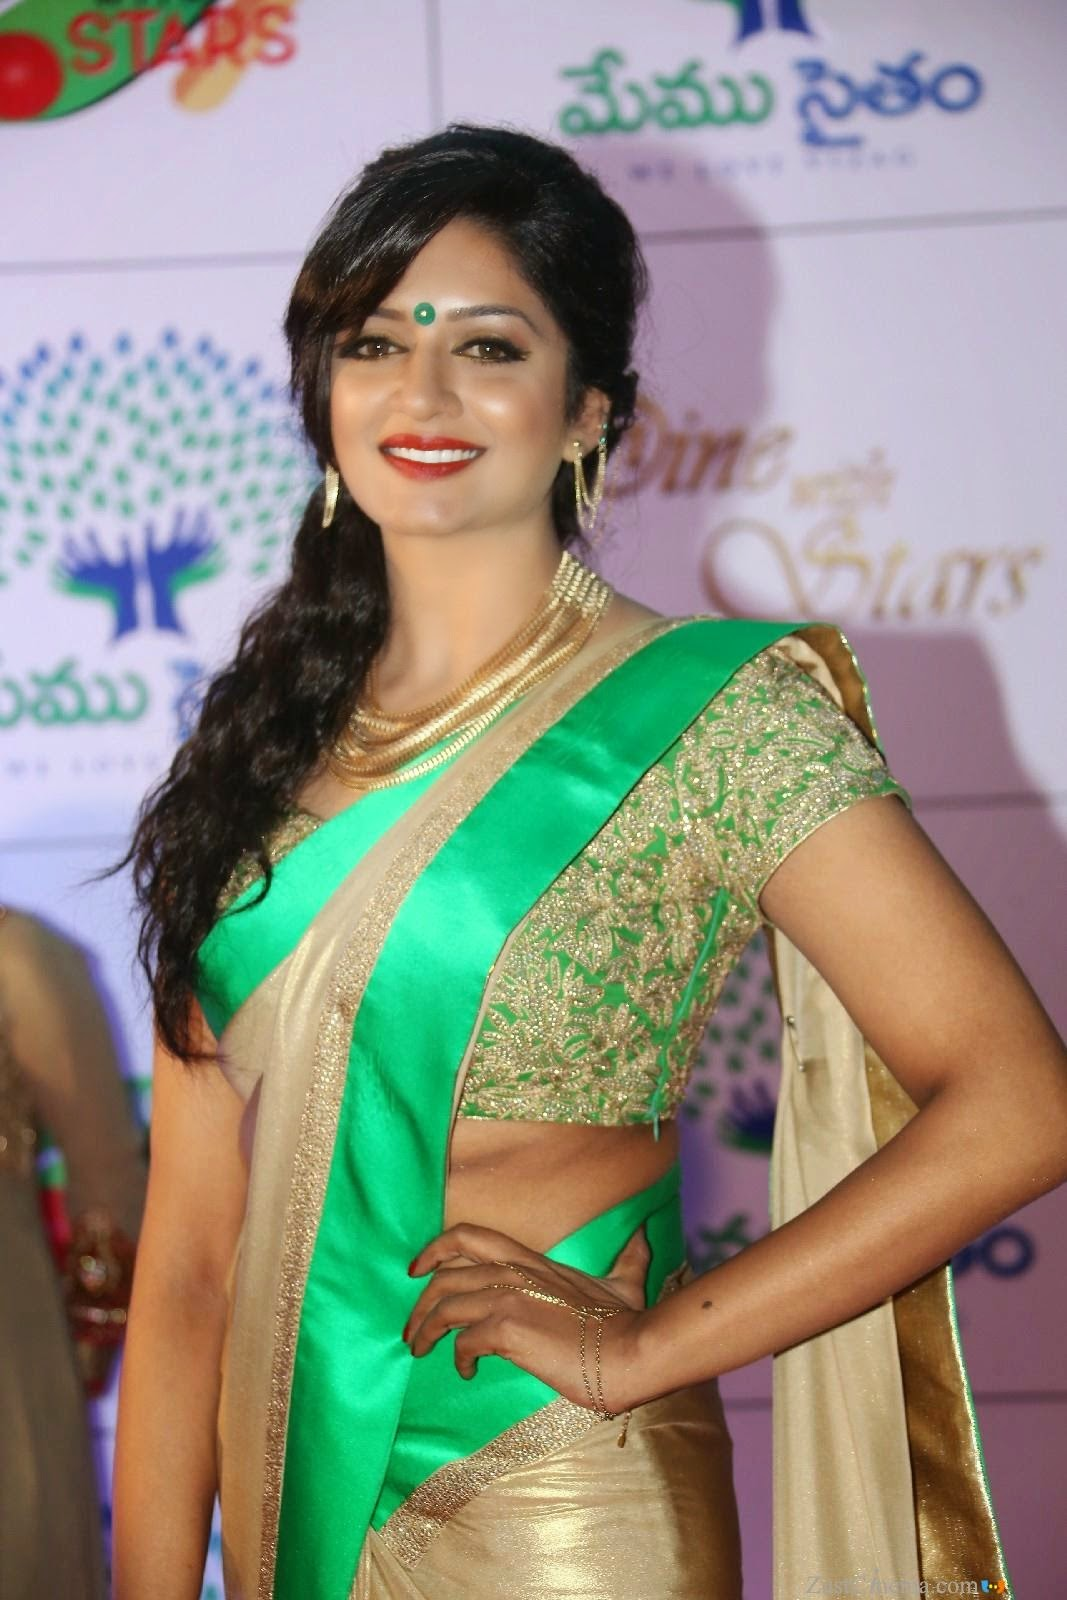 Actress Vimala Raman Latest Cute Hot Exclusive Beautiful Saree Navel Show Spicy Photos Gallery At Memu Saitam Dine With Stars Event